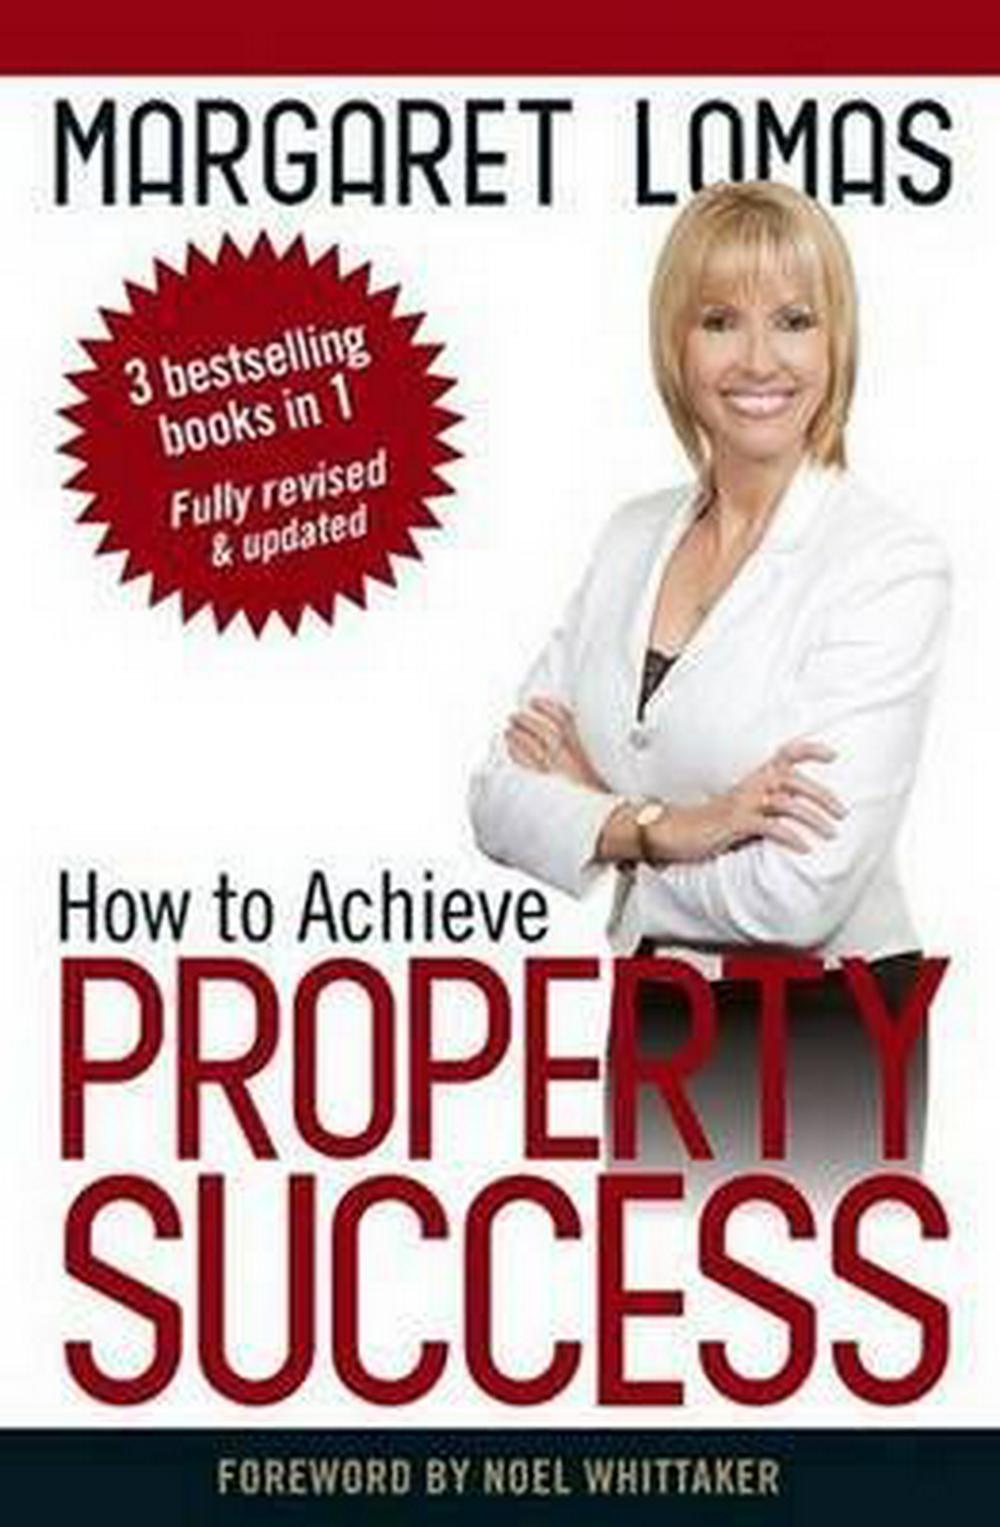 How to Achieve Property Success